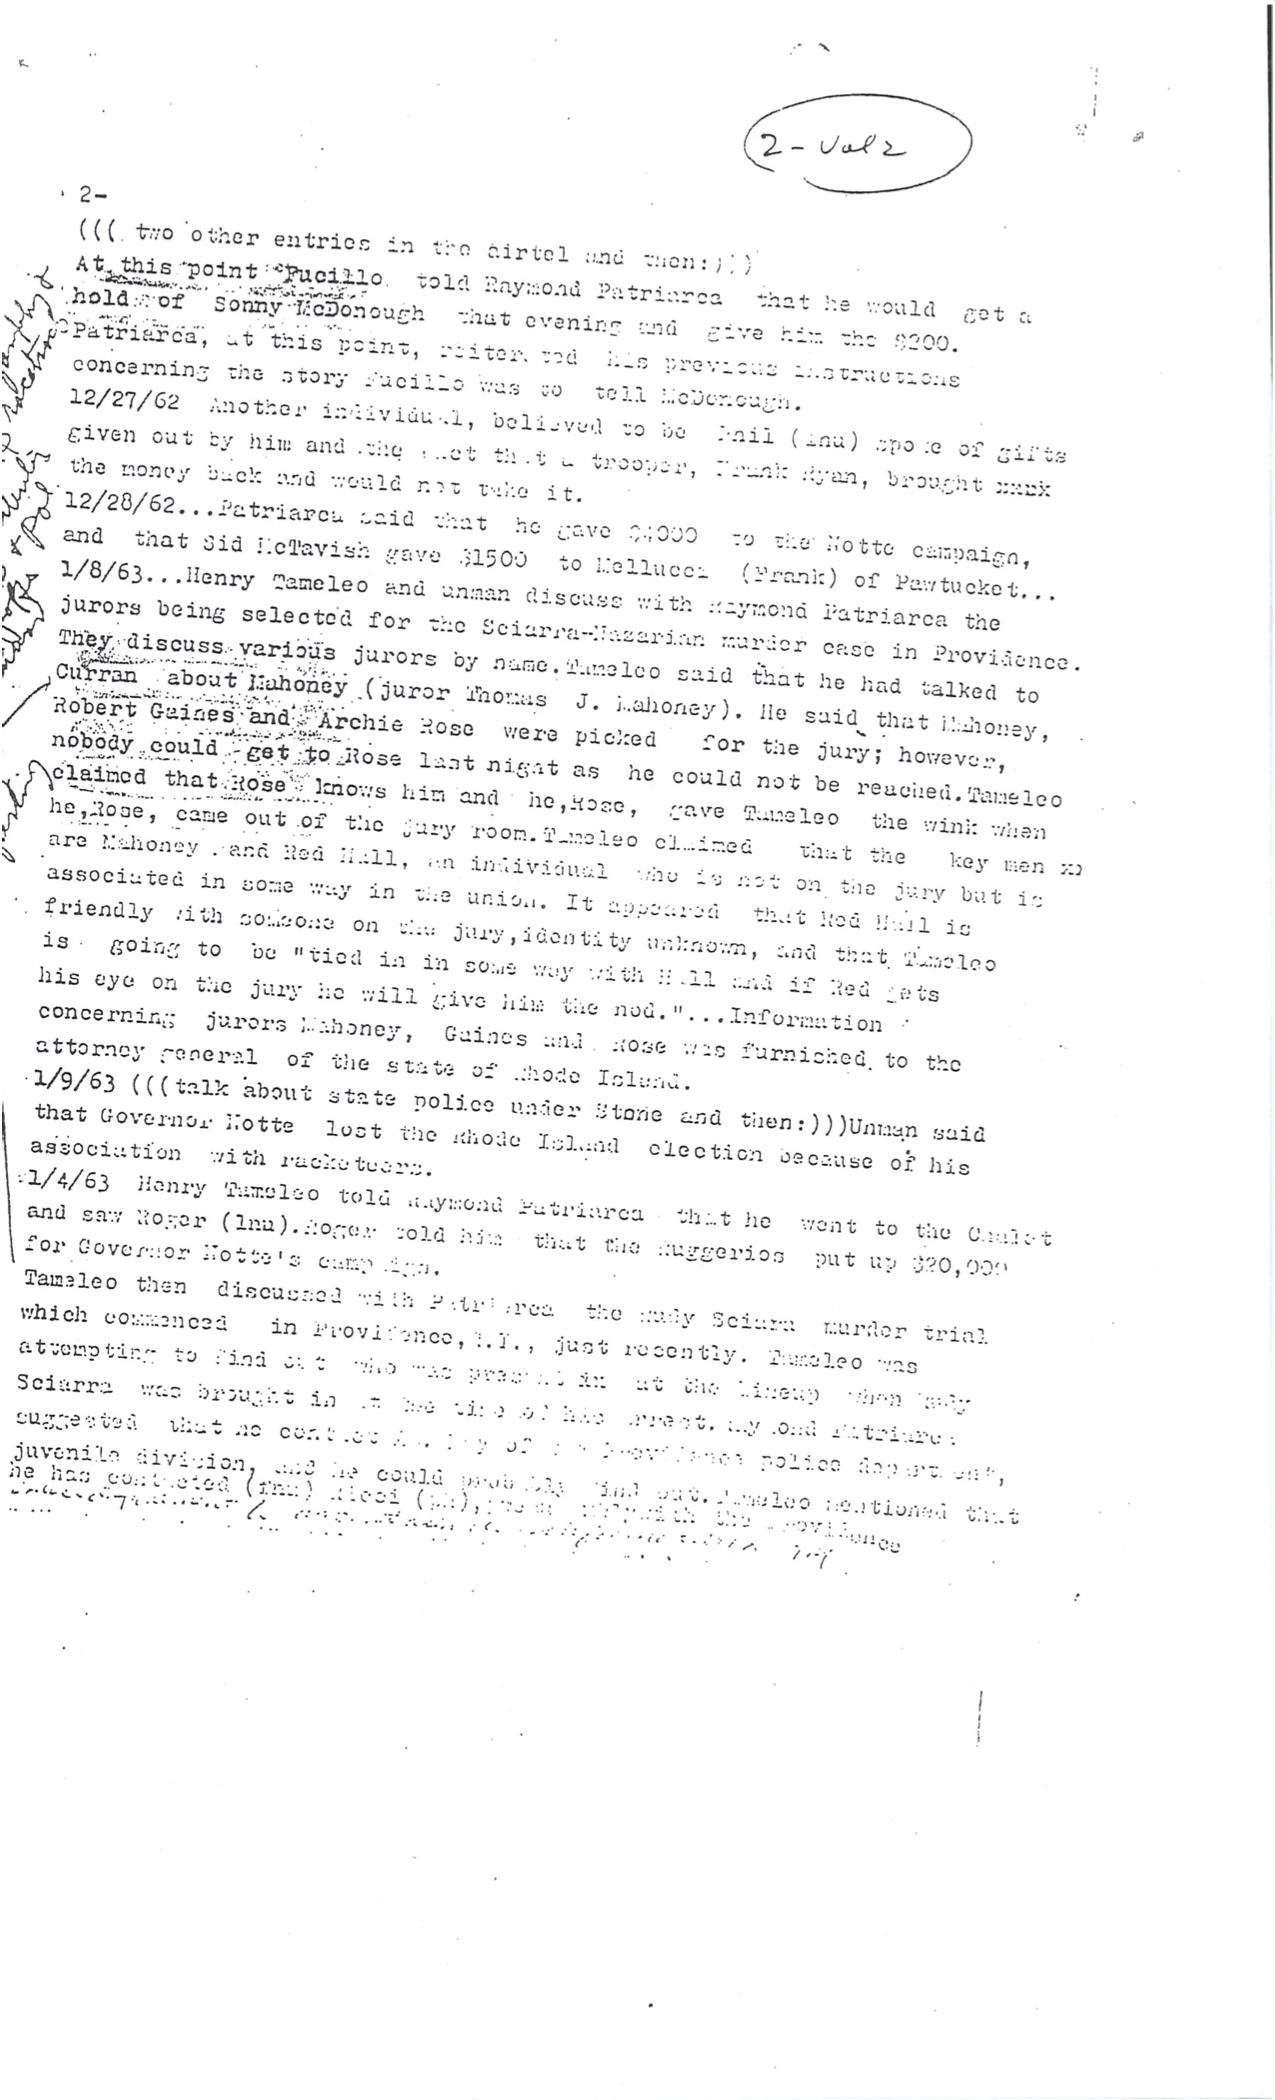 An excerpt from secret FBI wiretaps that recorded conversations at mob boss Raymond Patriarca's Providence headquarters. This document summarizes the most significant parts of the conversations. In one note, dated 12/28/62,Patriarca is overheard saying he gave $4,000 to the campaign of politician John A. Notte. Notte was the governor of Rhode Island from 1961 through 1963. Patriarca recognized the importance of having influence in high places.